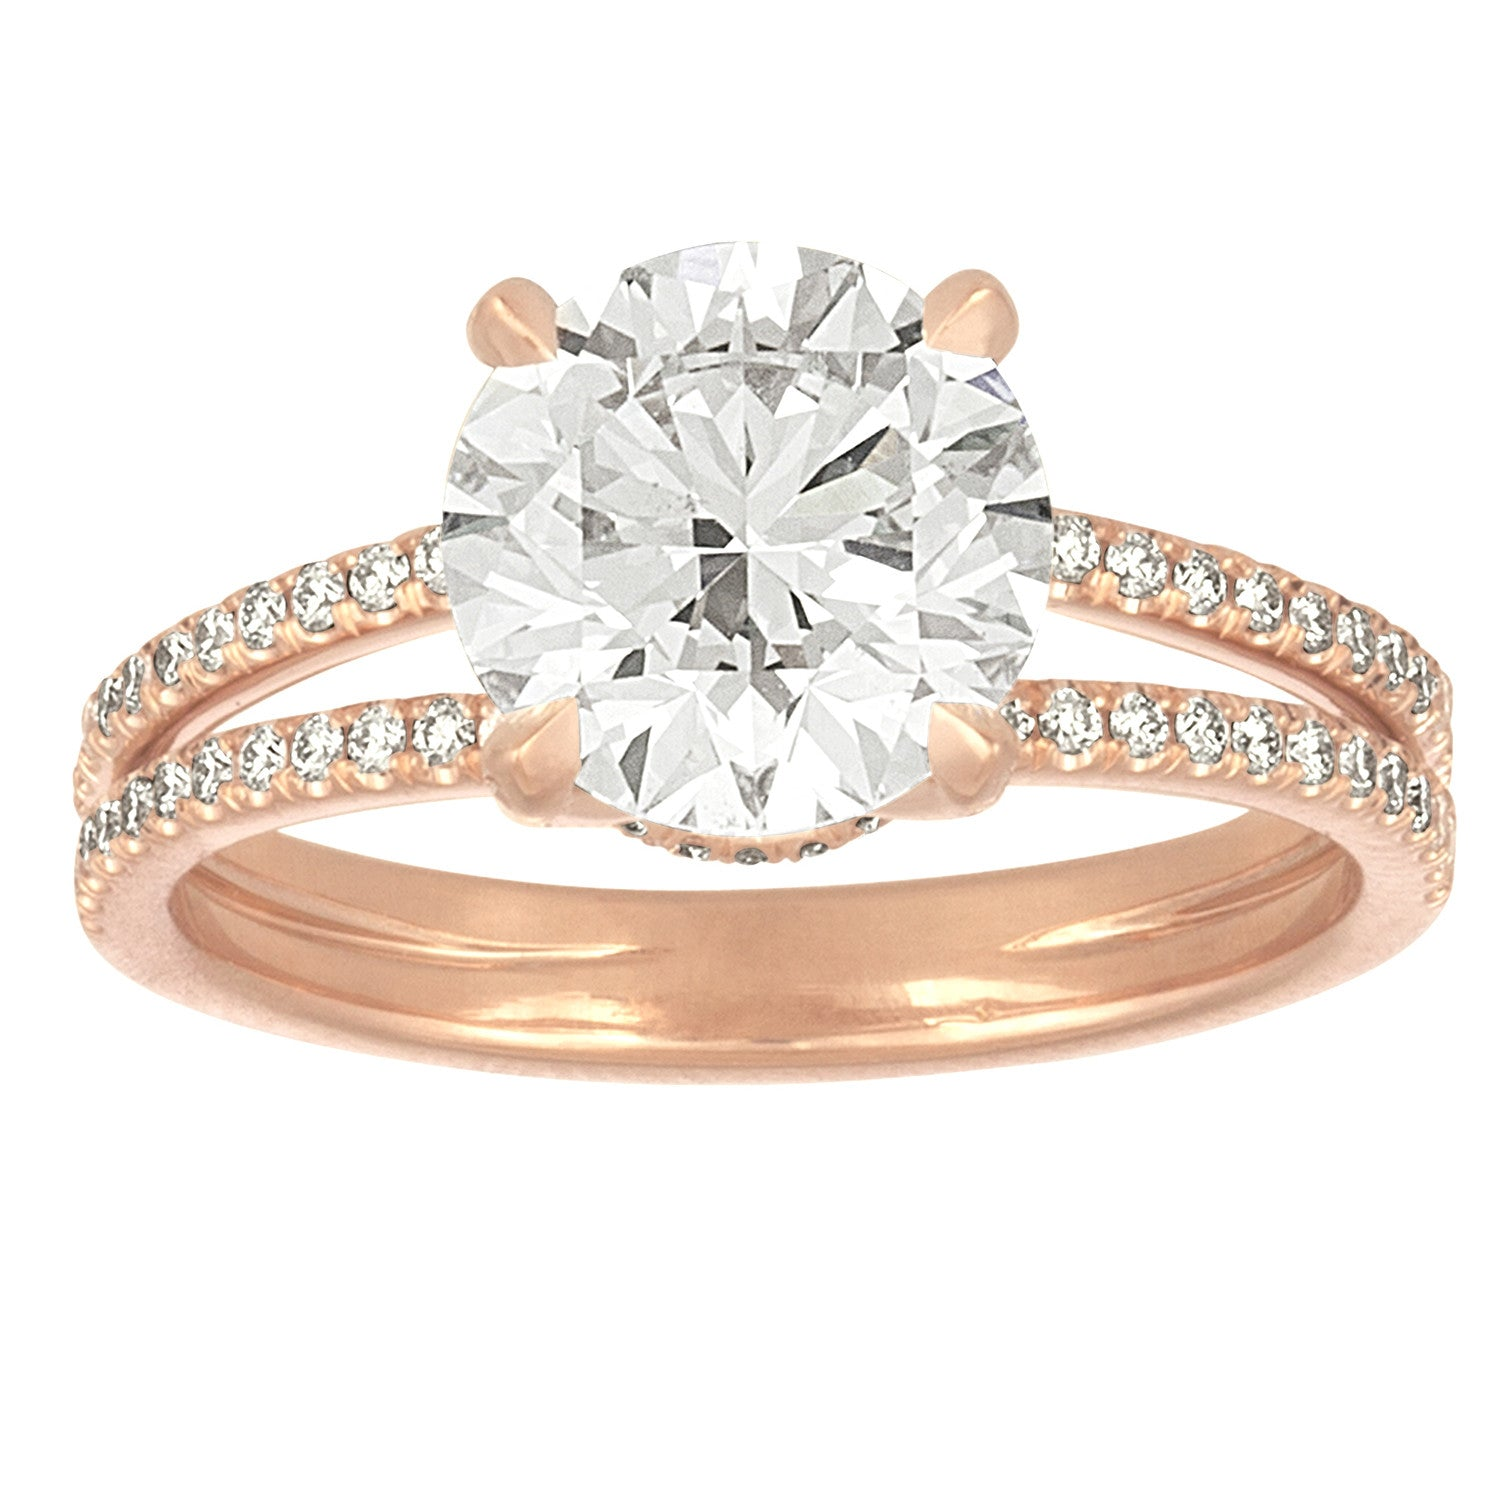 collectionalexis rings split product shank engagement double ch ring collection halo sylvie